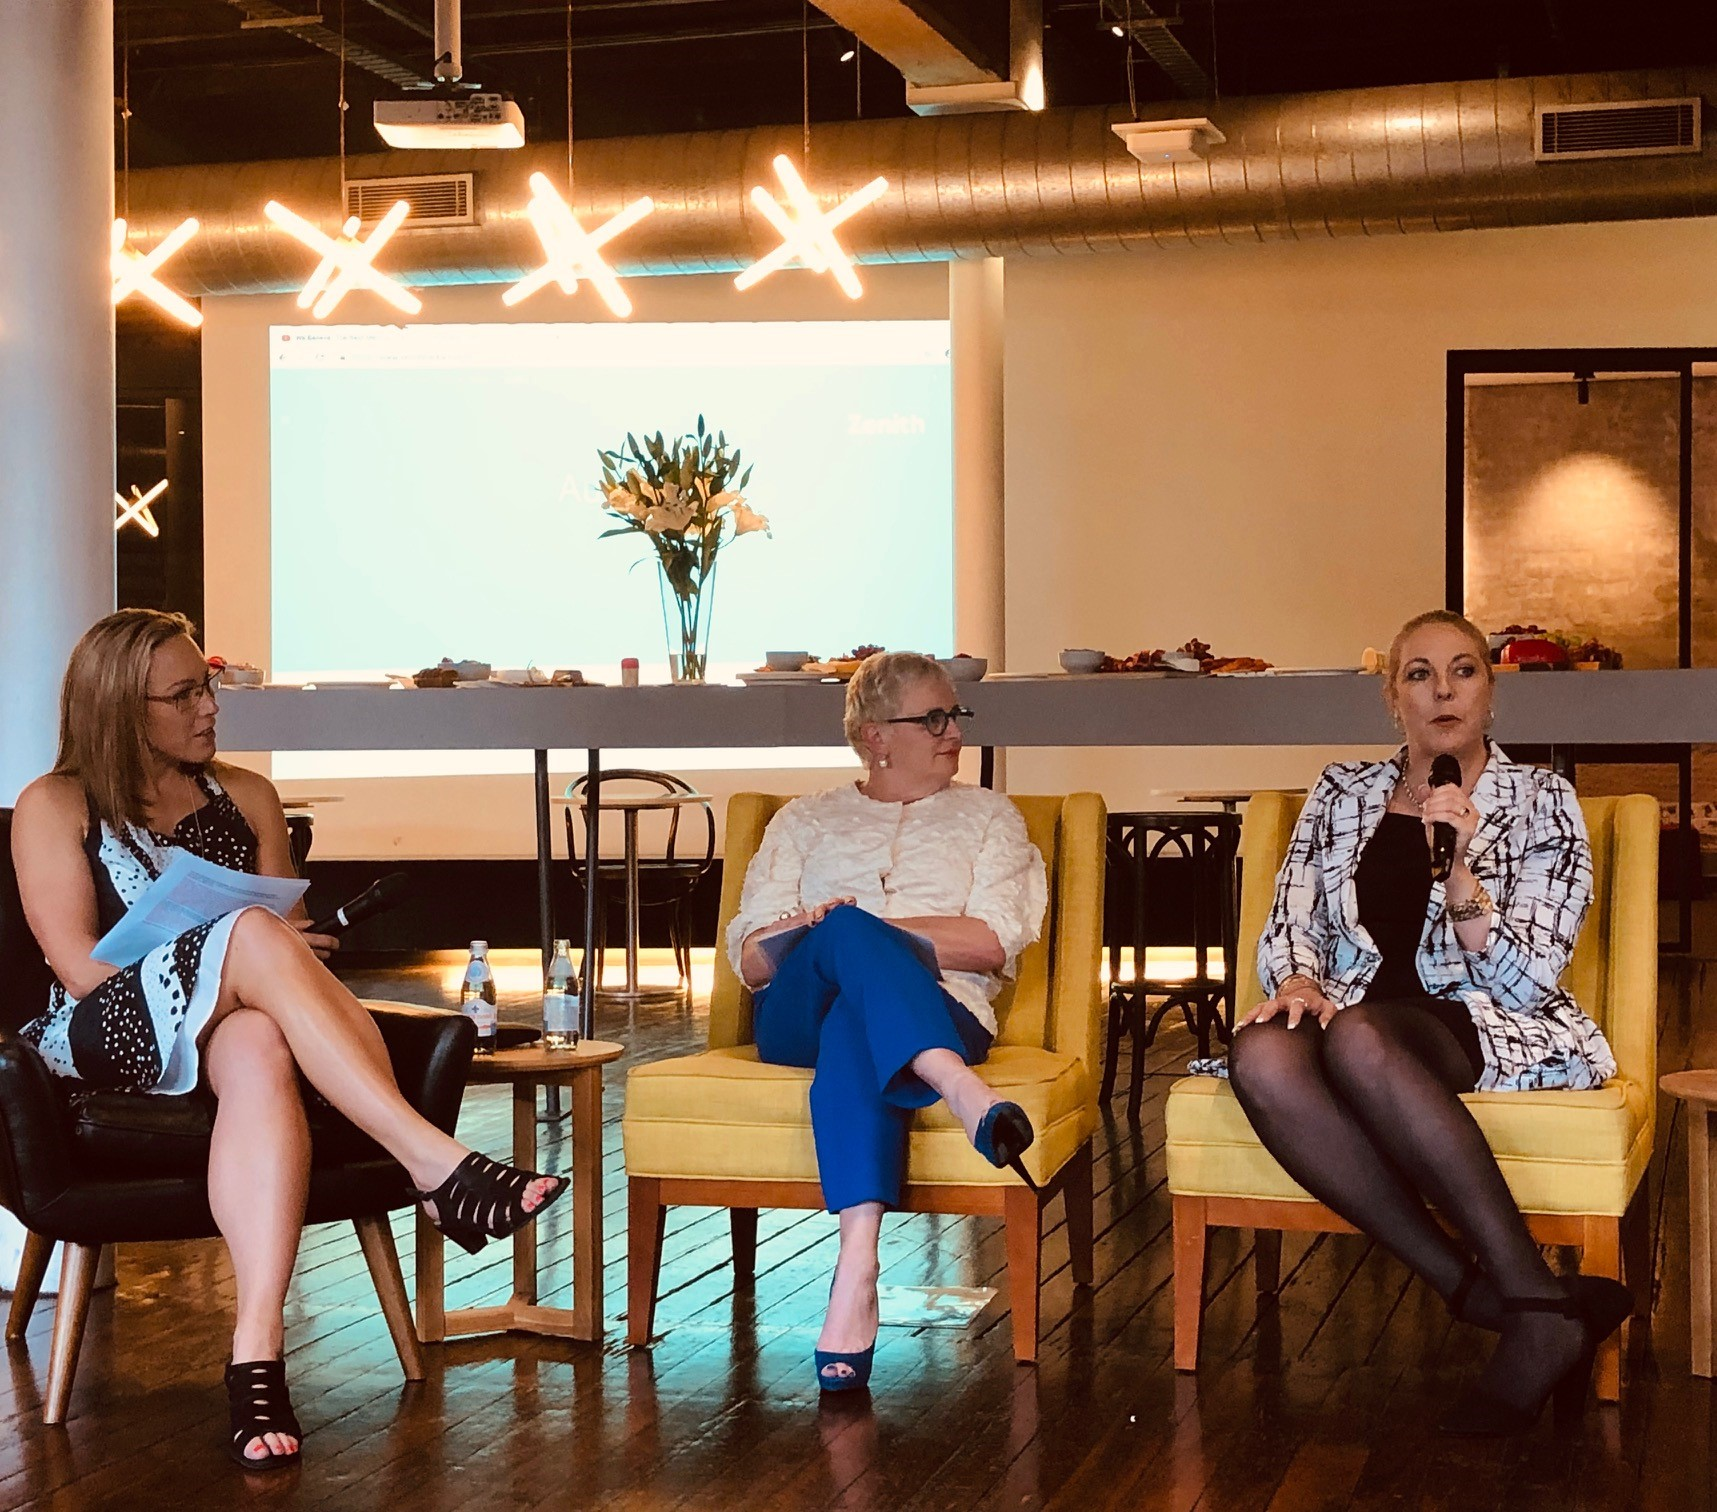 Industry leaders address the challenges of marketing to millennials at Zenith event